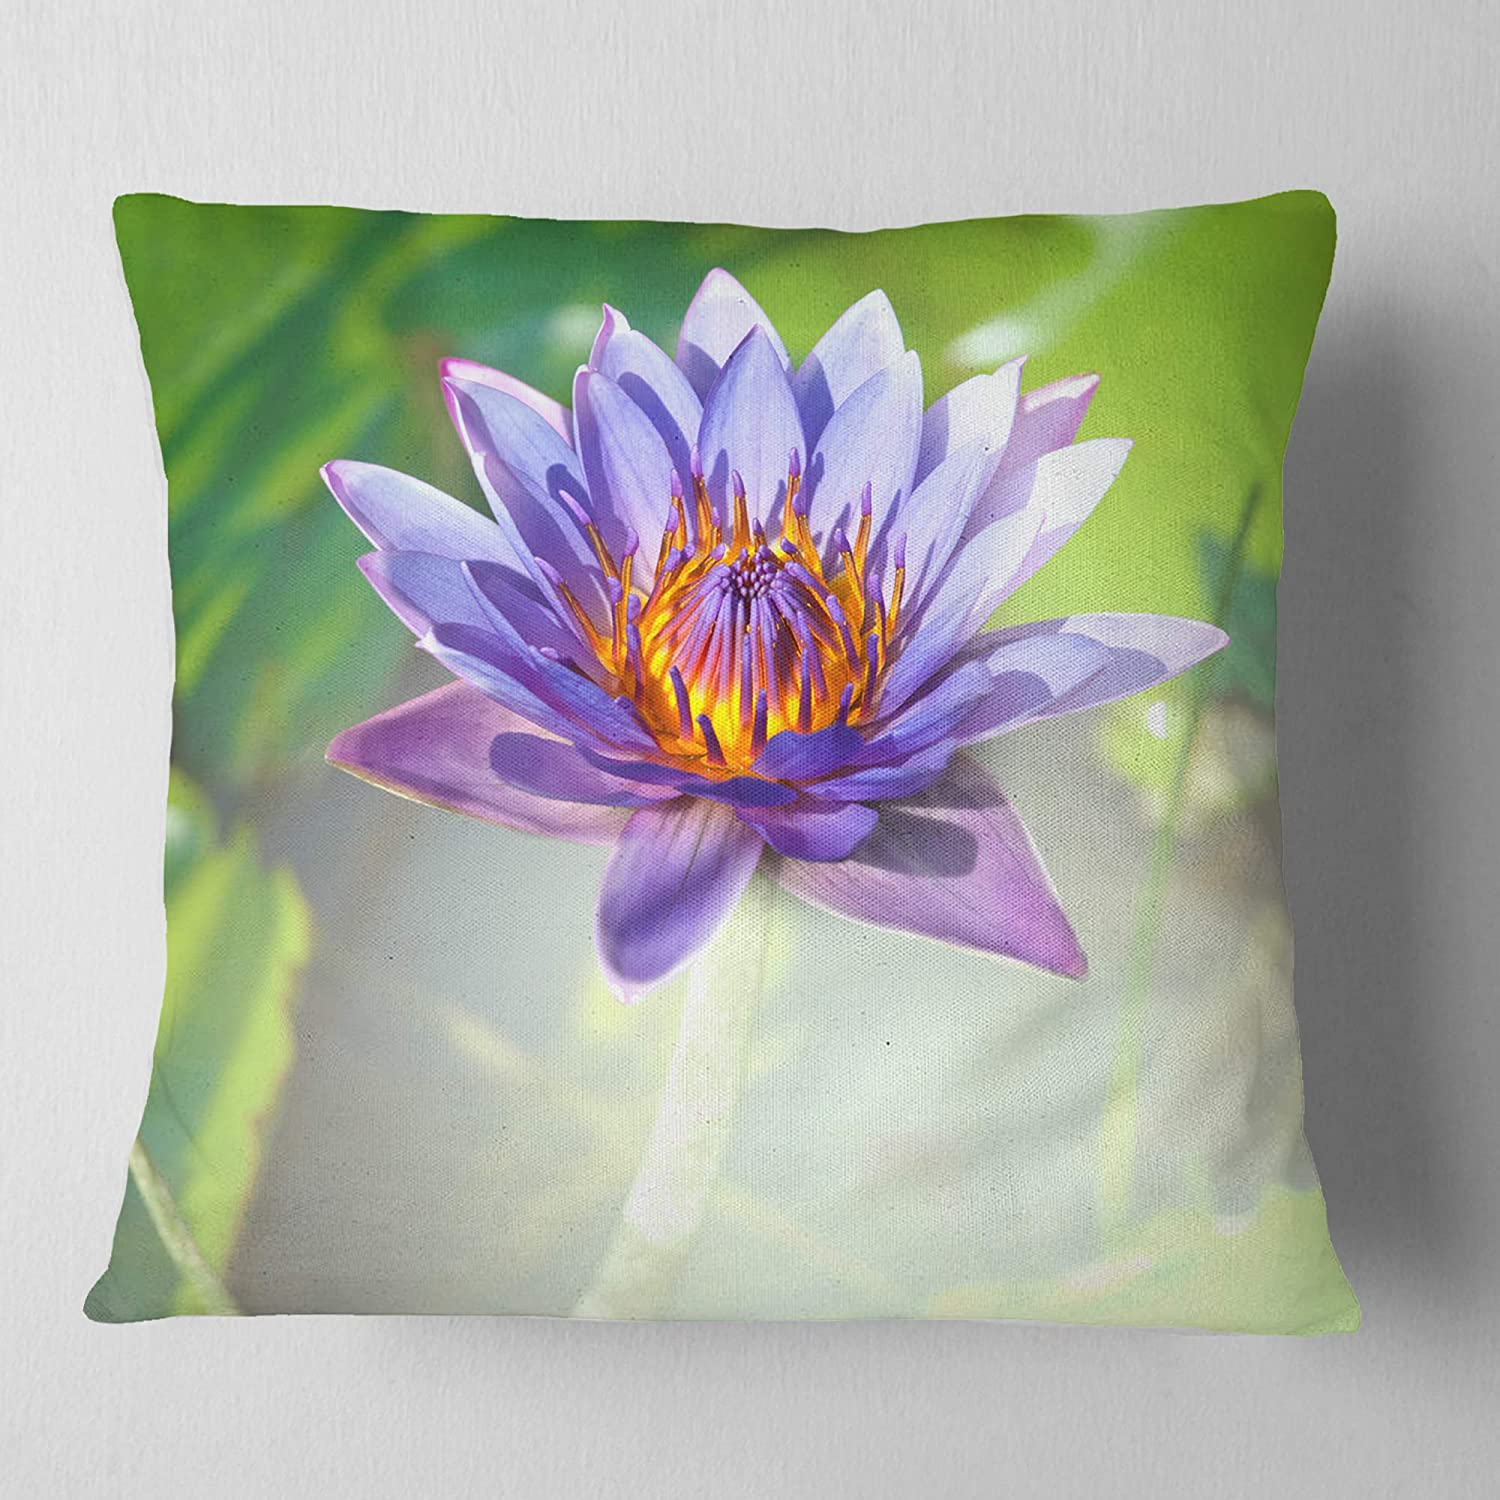 Designart CU12486-26-26 Huge Purple Lotus on Green Background Flower Cushion Cover for Living Room in Sofa Throw Pillow 26 in x 26 in